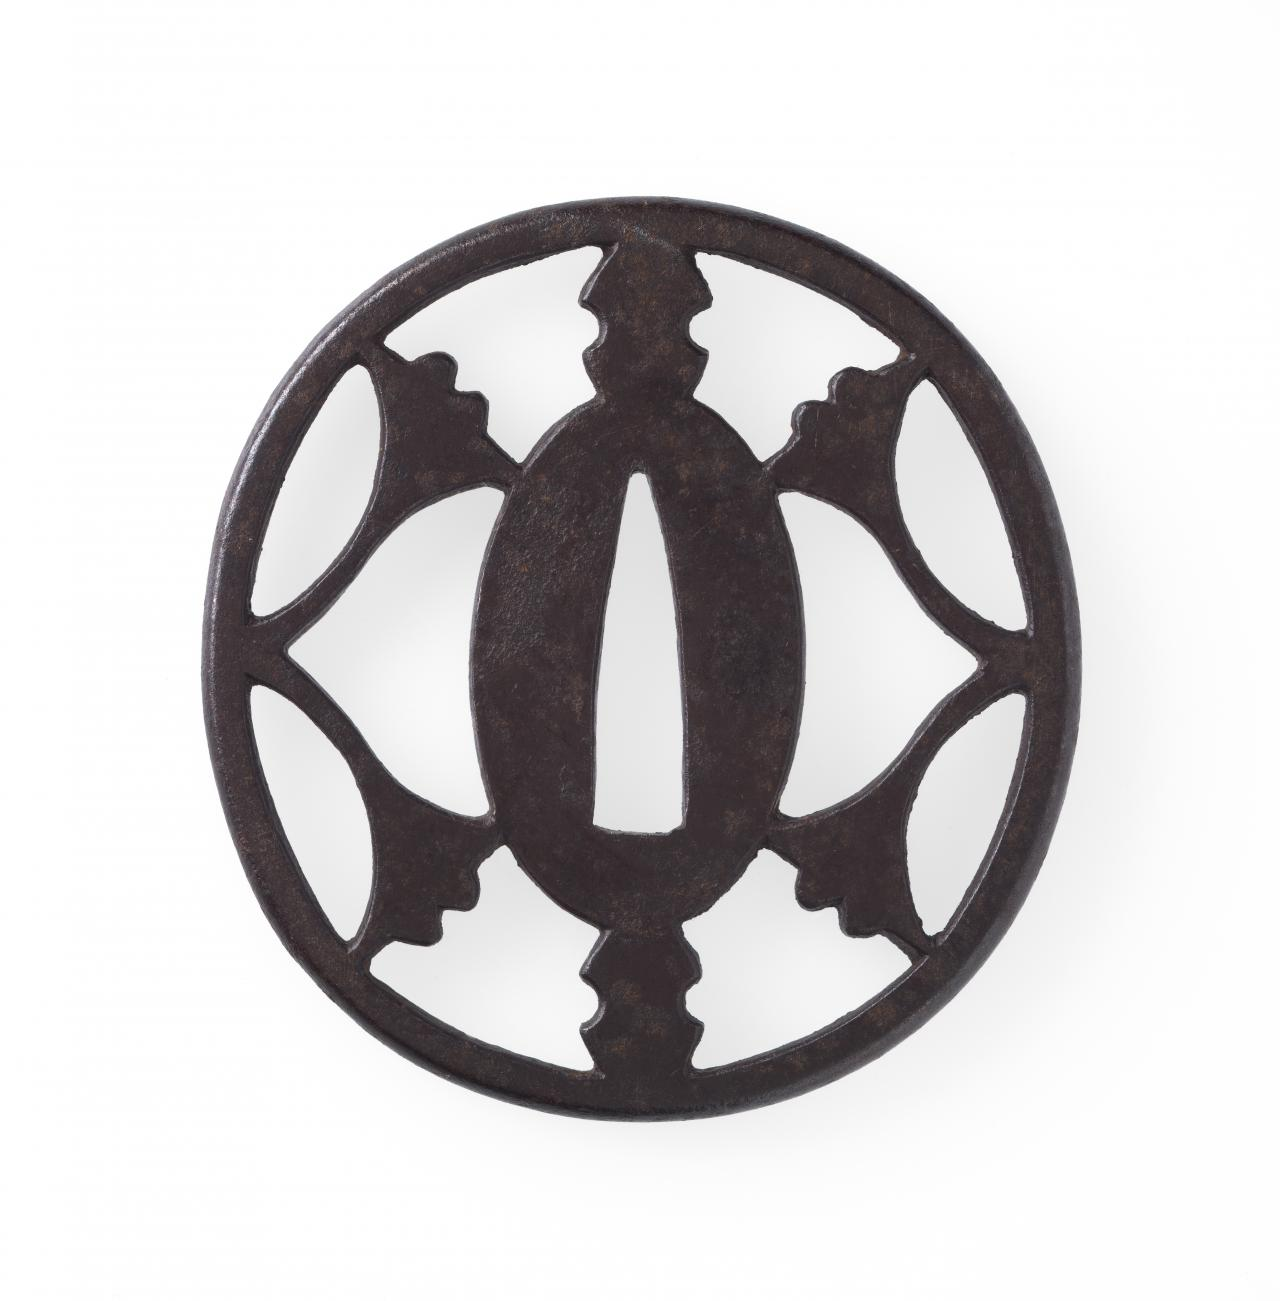 Sword guard with ginko leaf and weight design